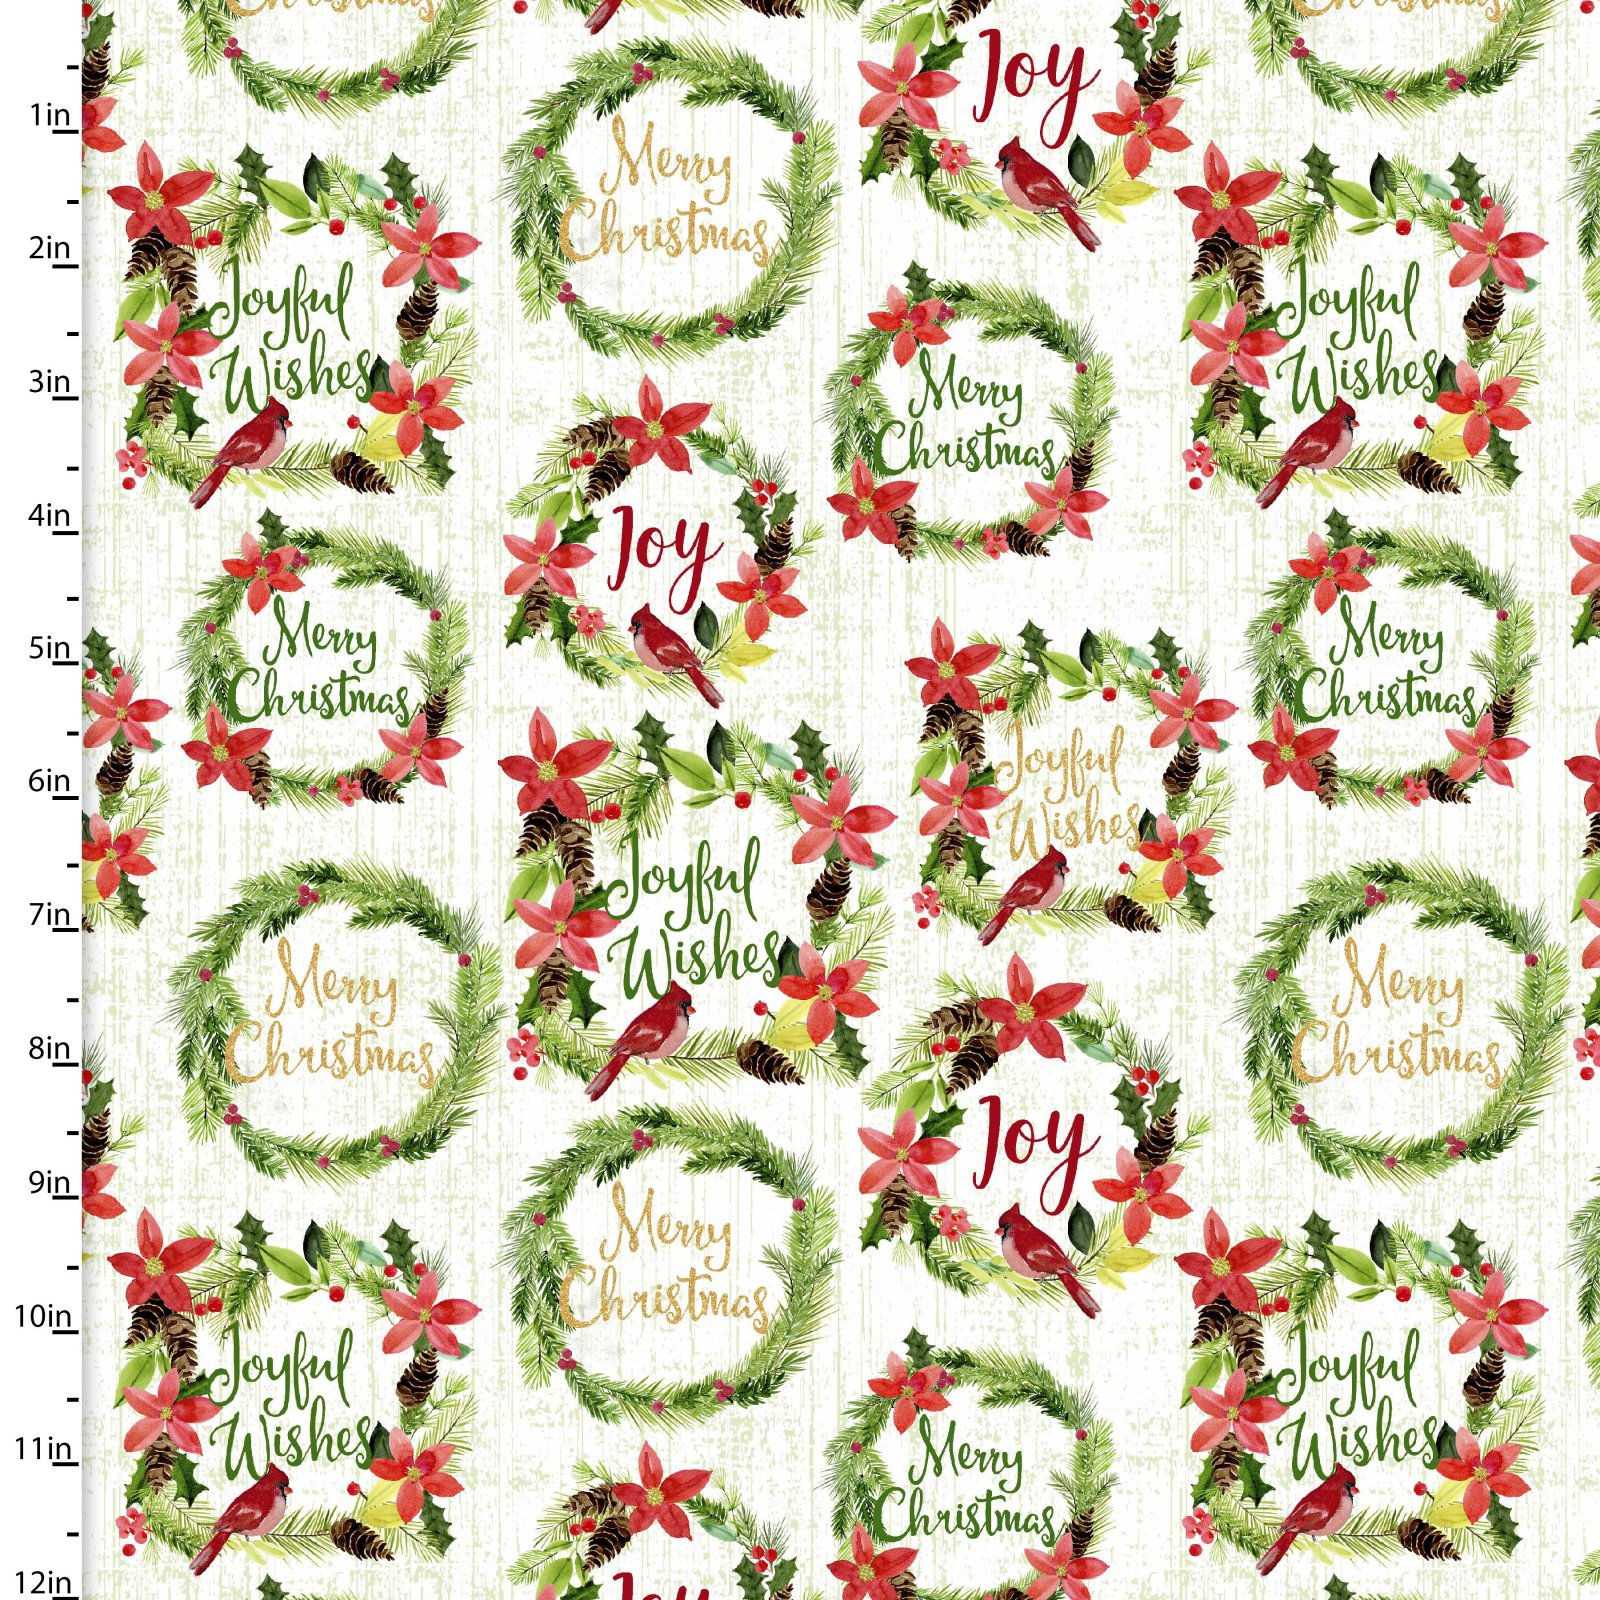 Holiday Joy by Stephanie Ryan<br>13848-White